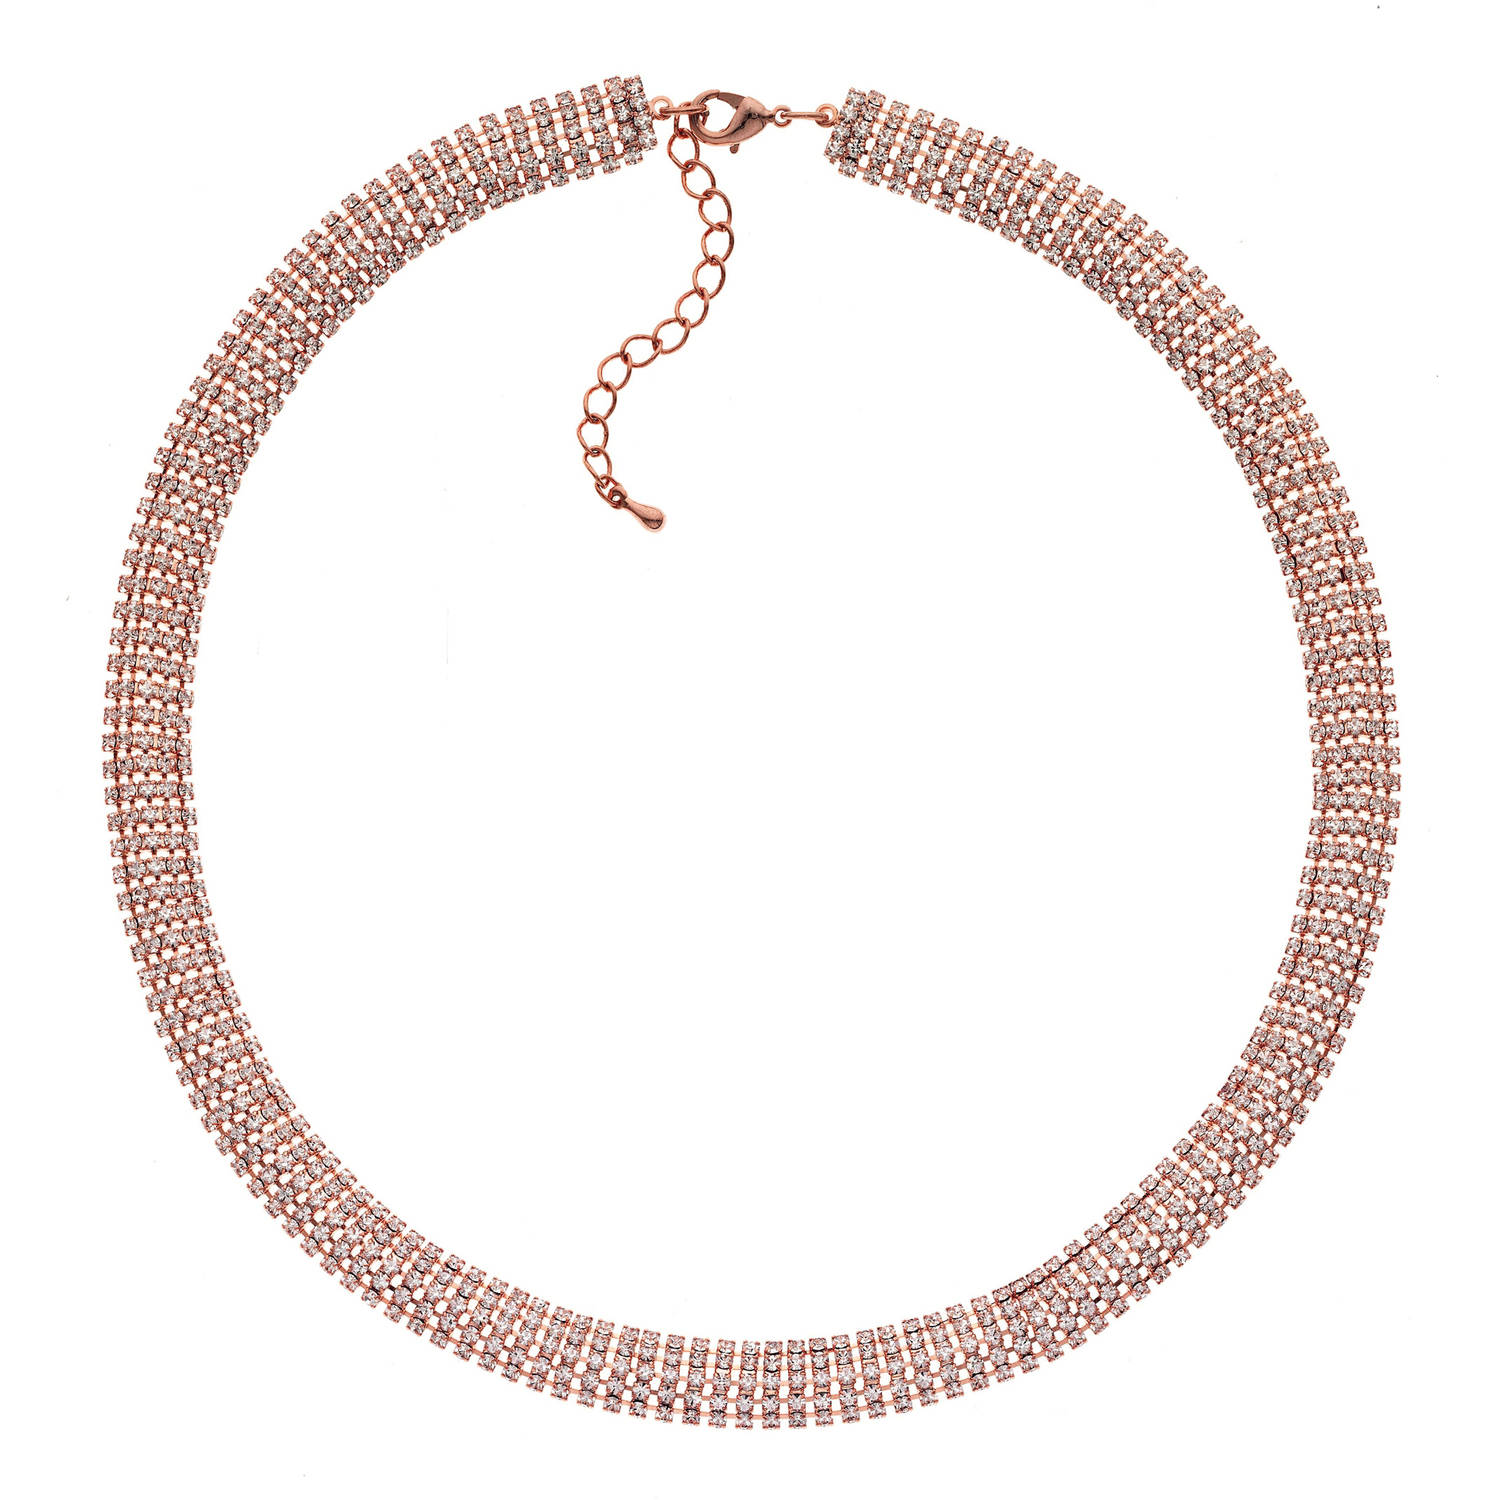 X & O Handset Austrian Crystal 14kt Rose Gold-Plated 10mm Snake Chain Necklace